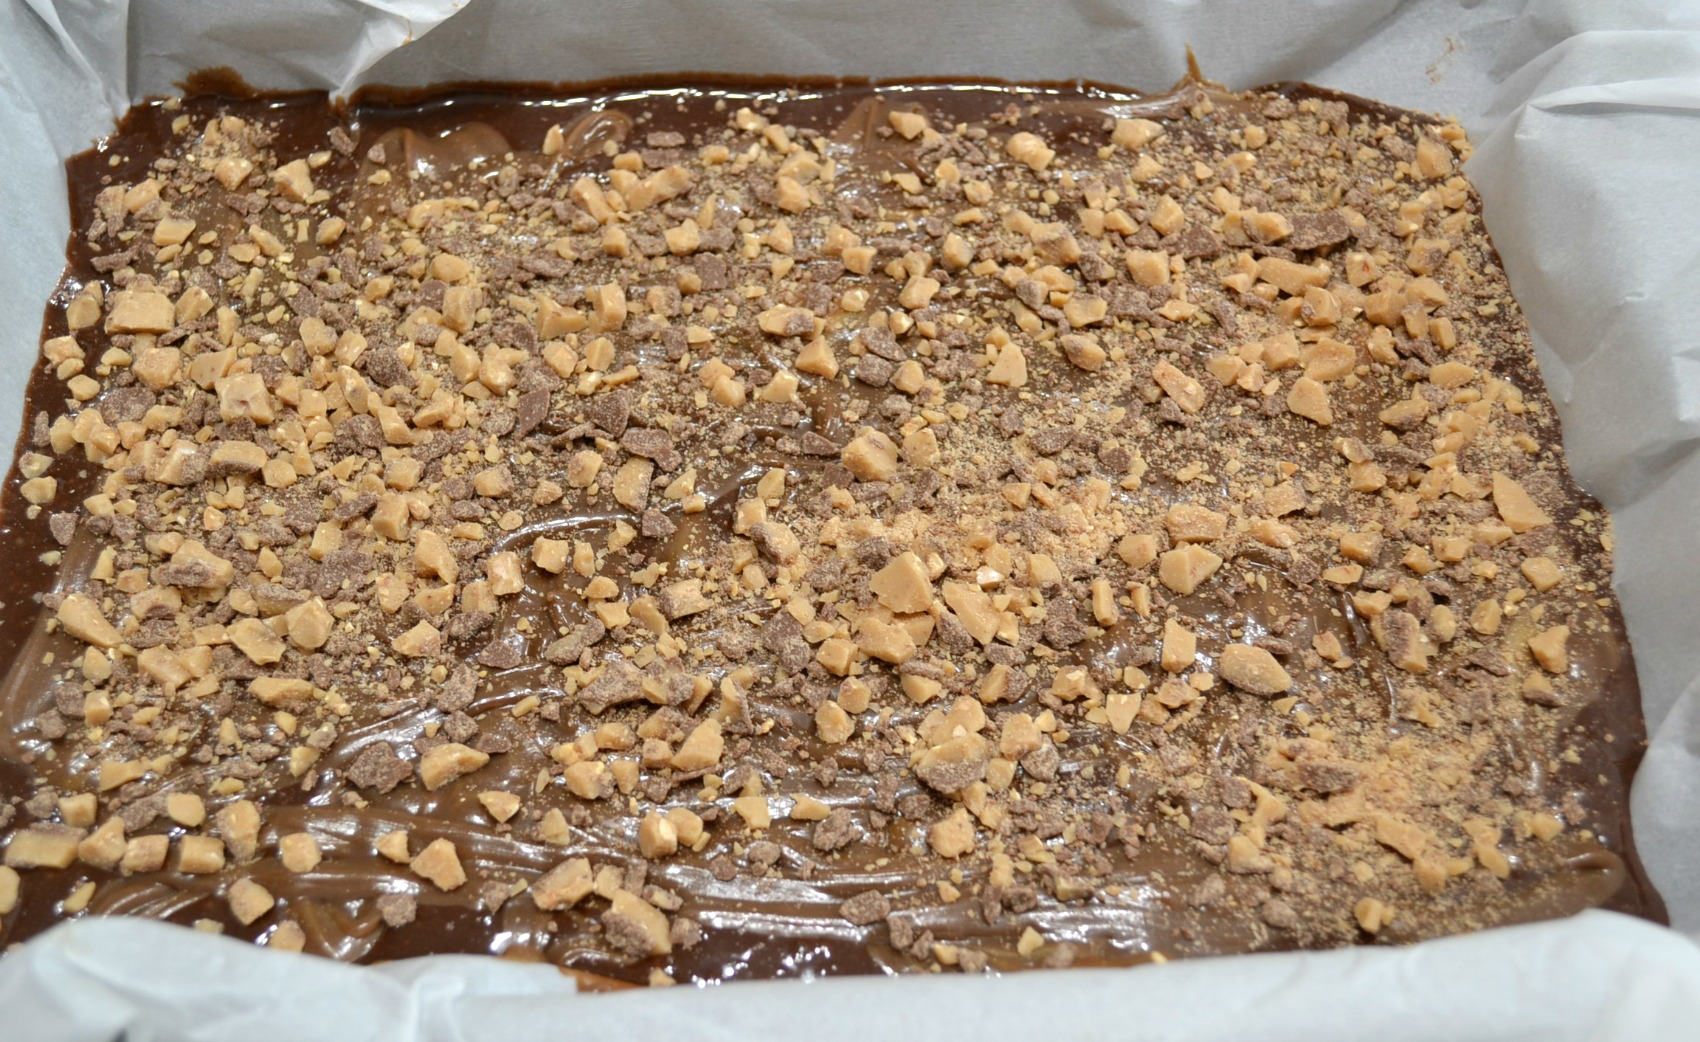 A decadent brownie dessert made with a can of chocolate flavored sweetened condensed milk, peanut butter, and toffee bits